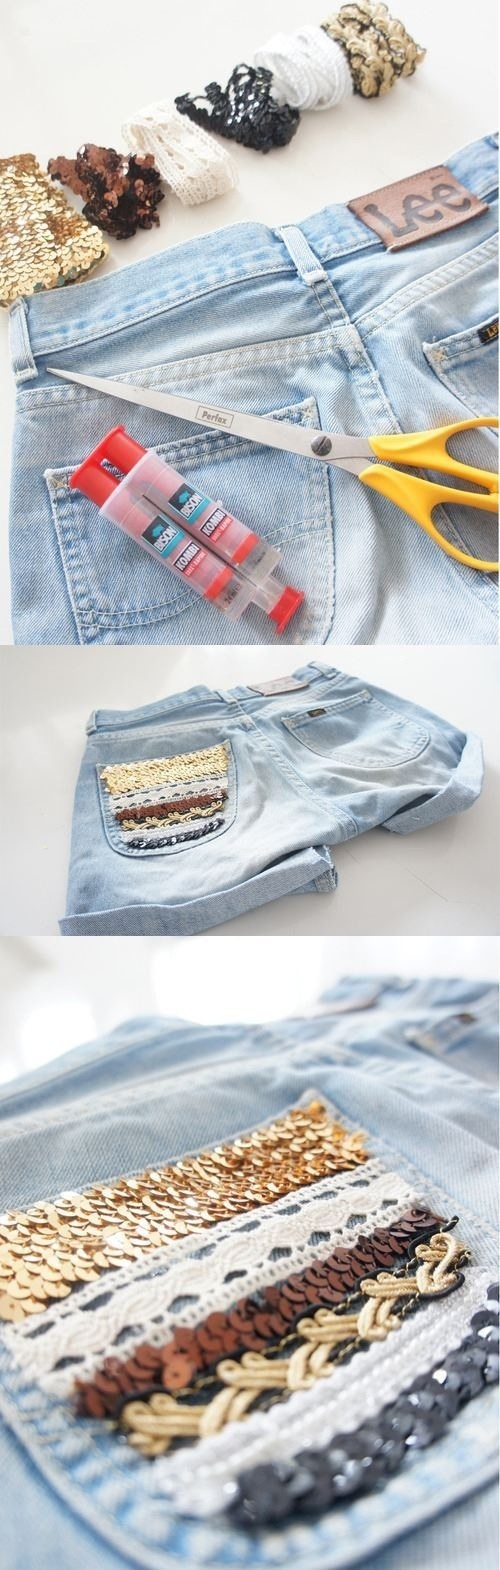 give jeans a new look